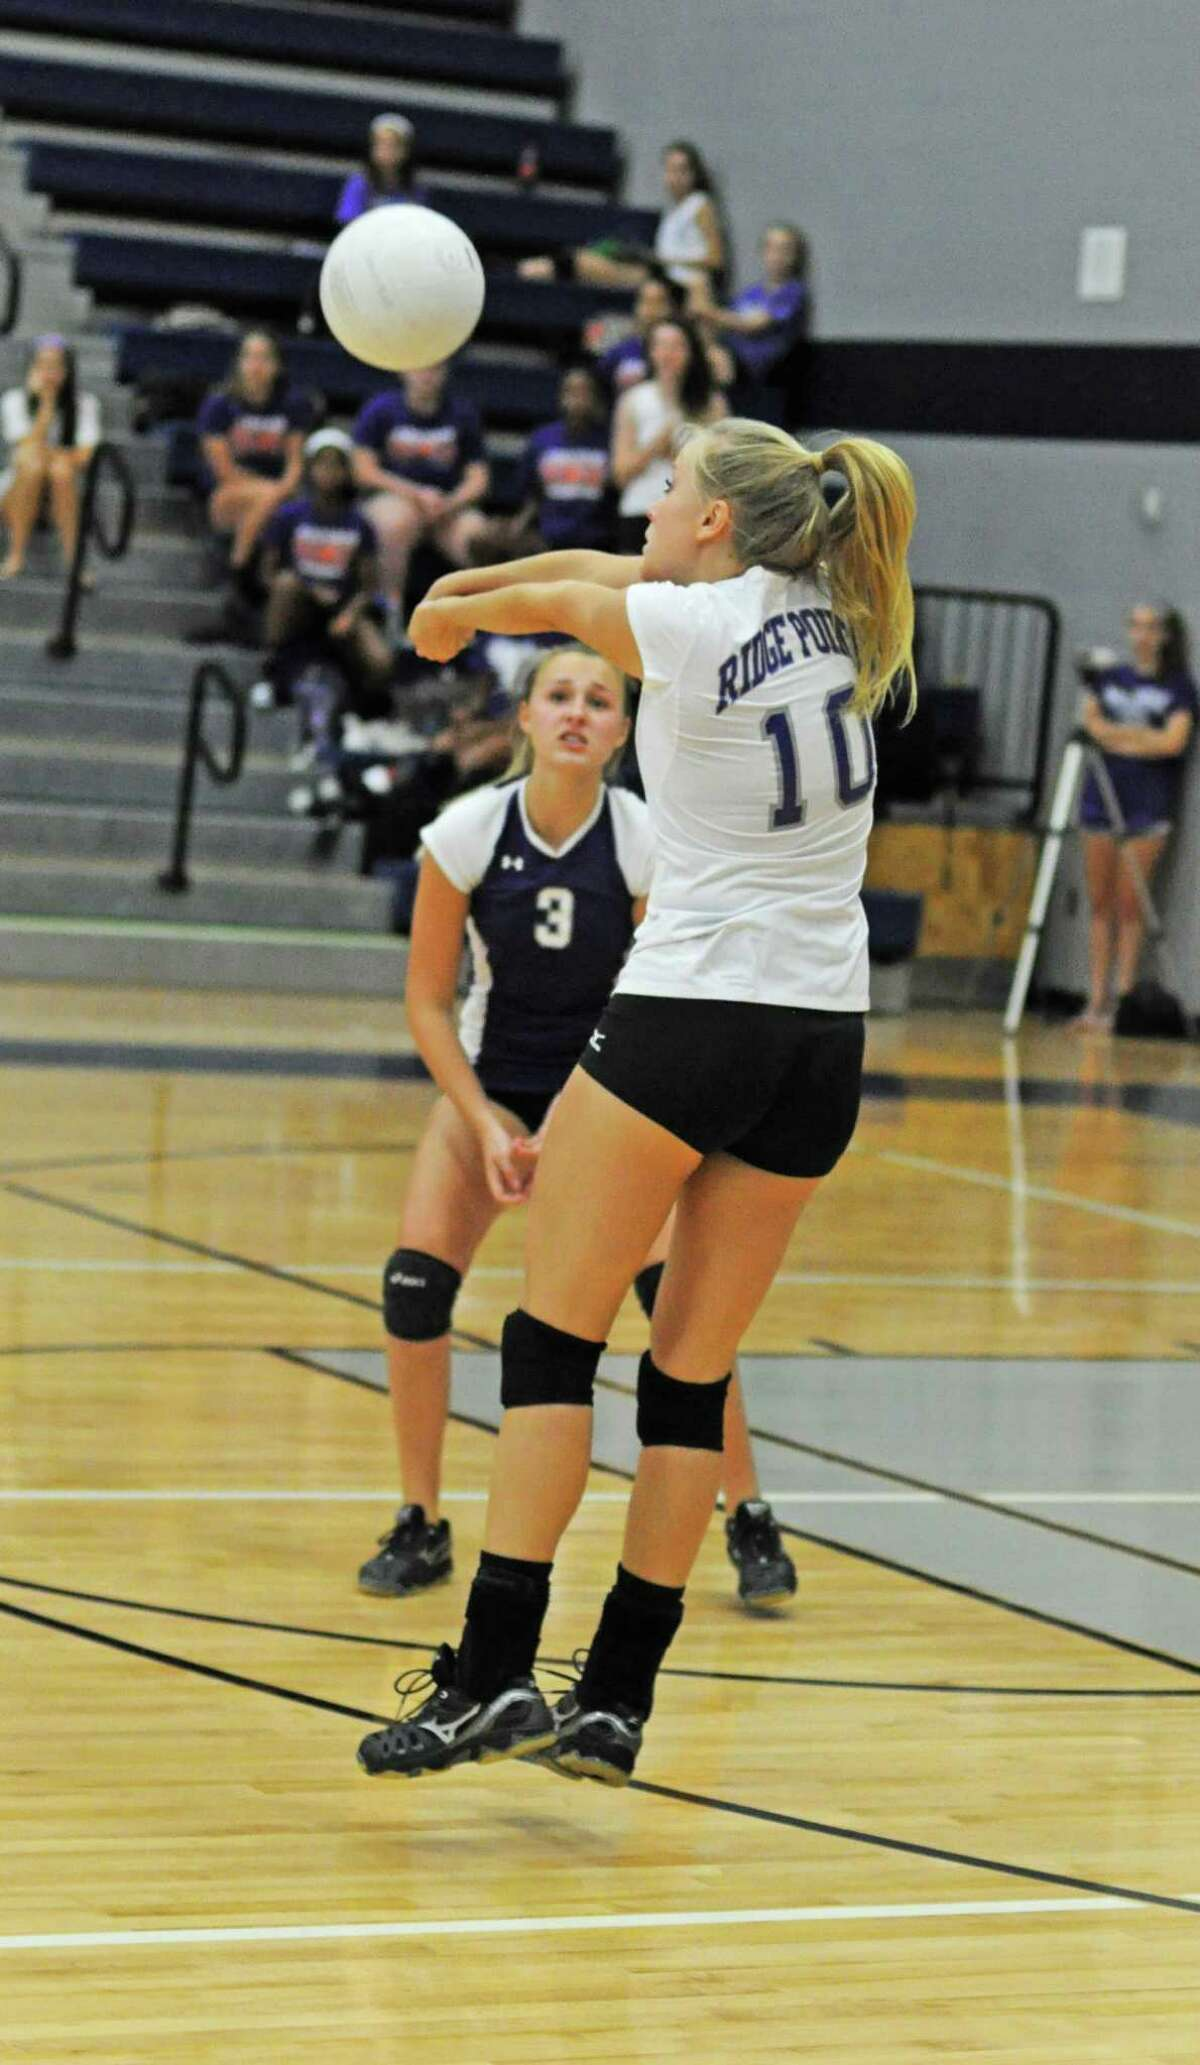 Ridge Point senior Vallen Vaughan (10) and sophomore libero Avery Condrey (3) on 9-7-12 in a District 22-4A volleyball opener at Tomball Memorial. Ridge Point defeated Tomball Memorial 25-22, 29-27, 22-25, 12-25, 15-10.